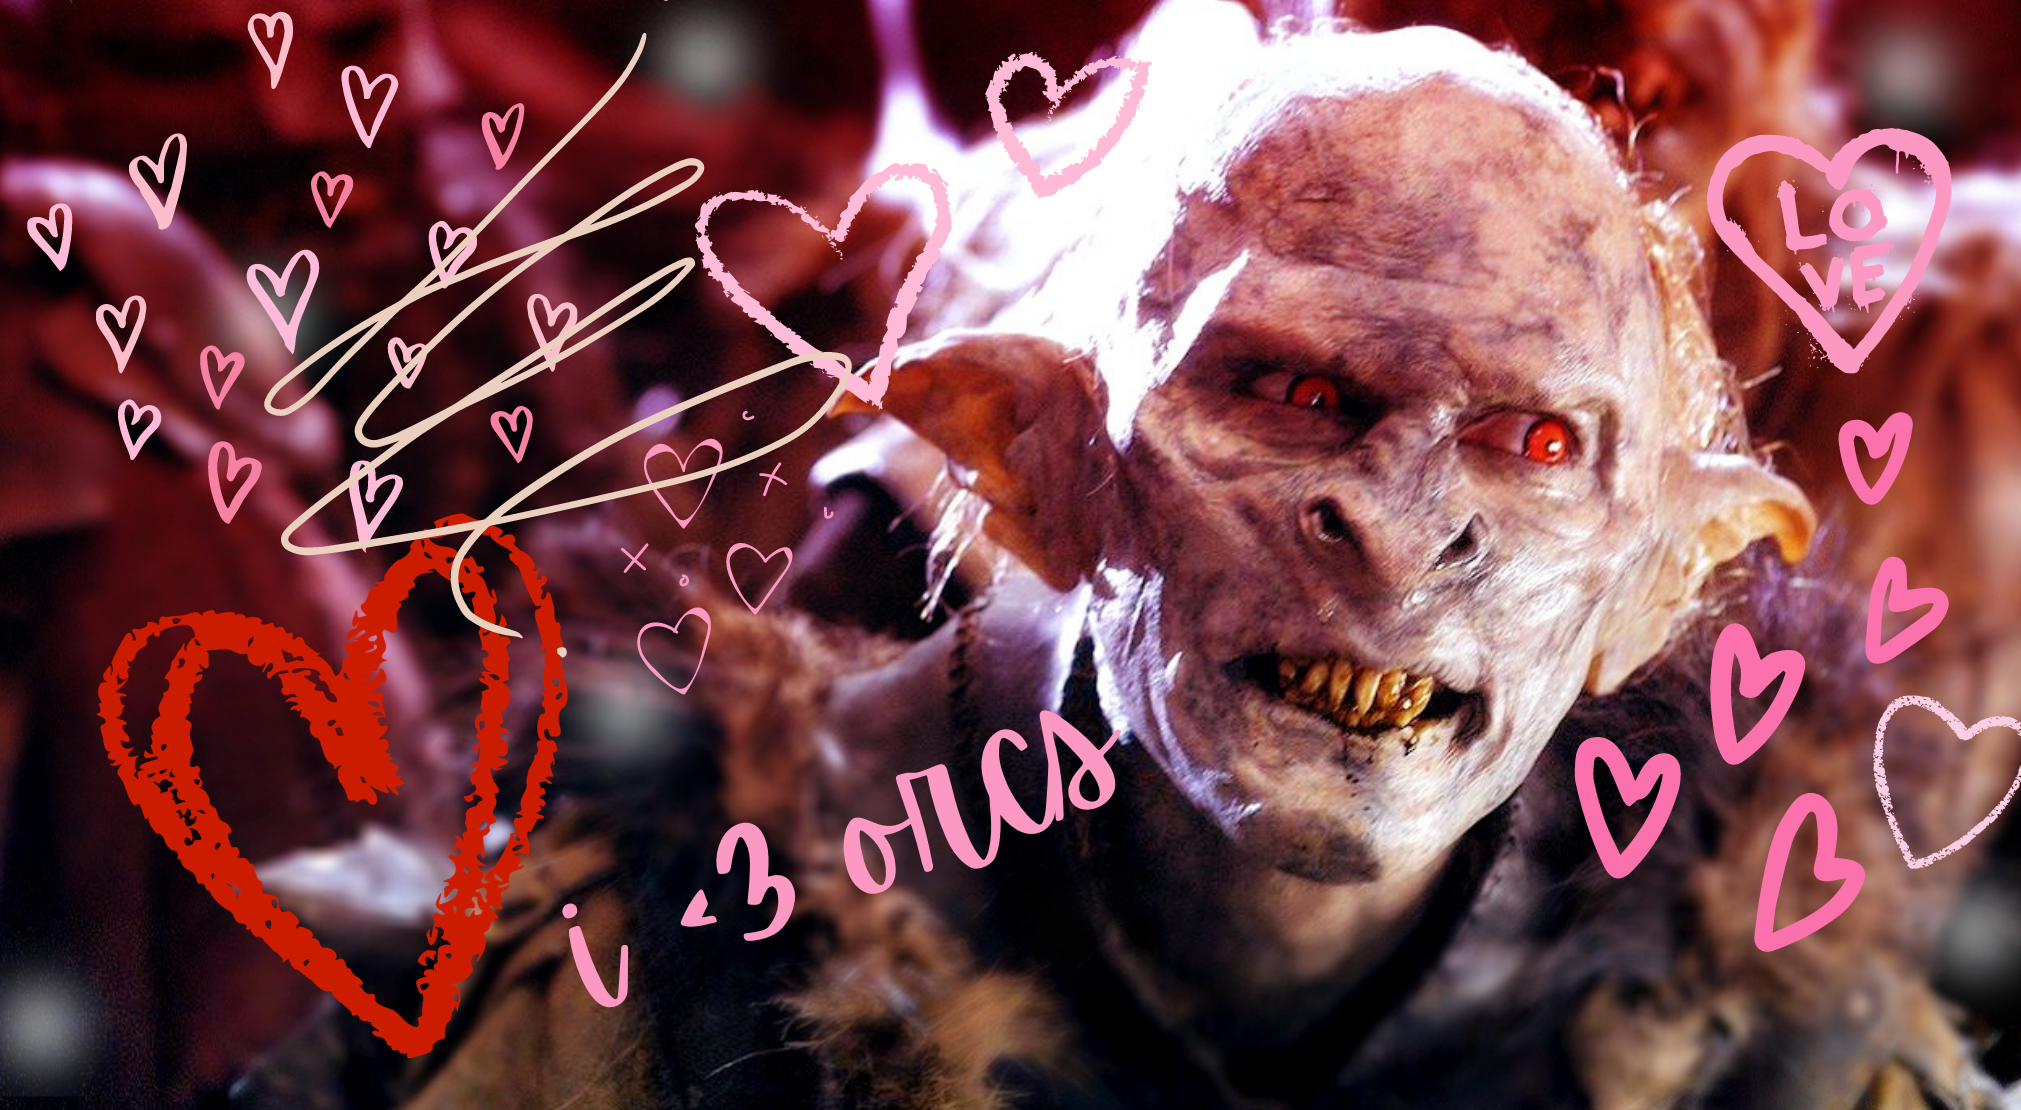 An orc from Lord of the Rings covered in hearts